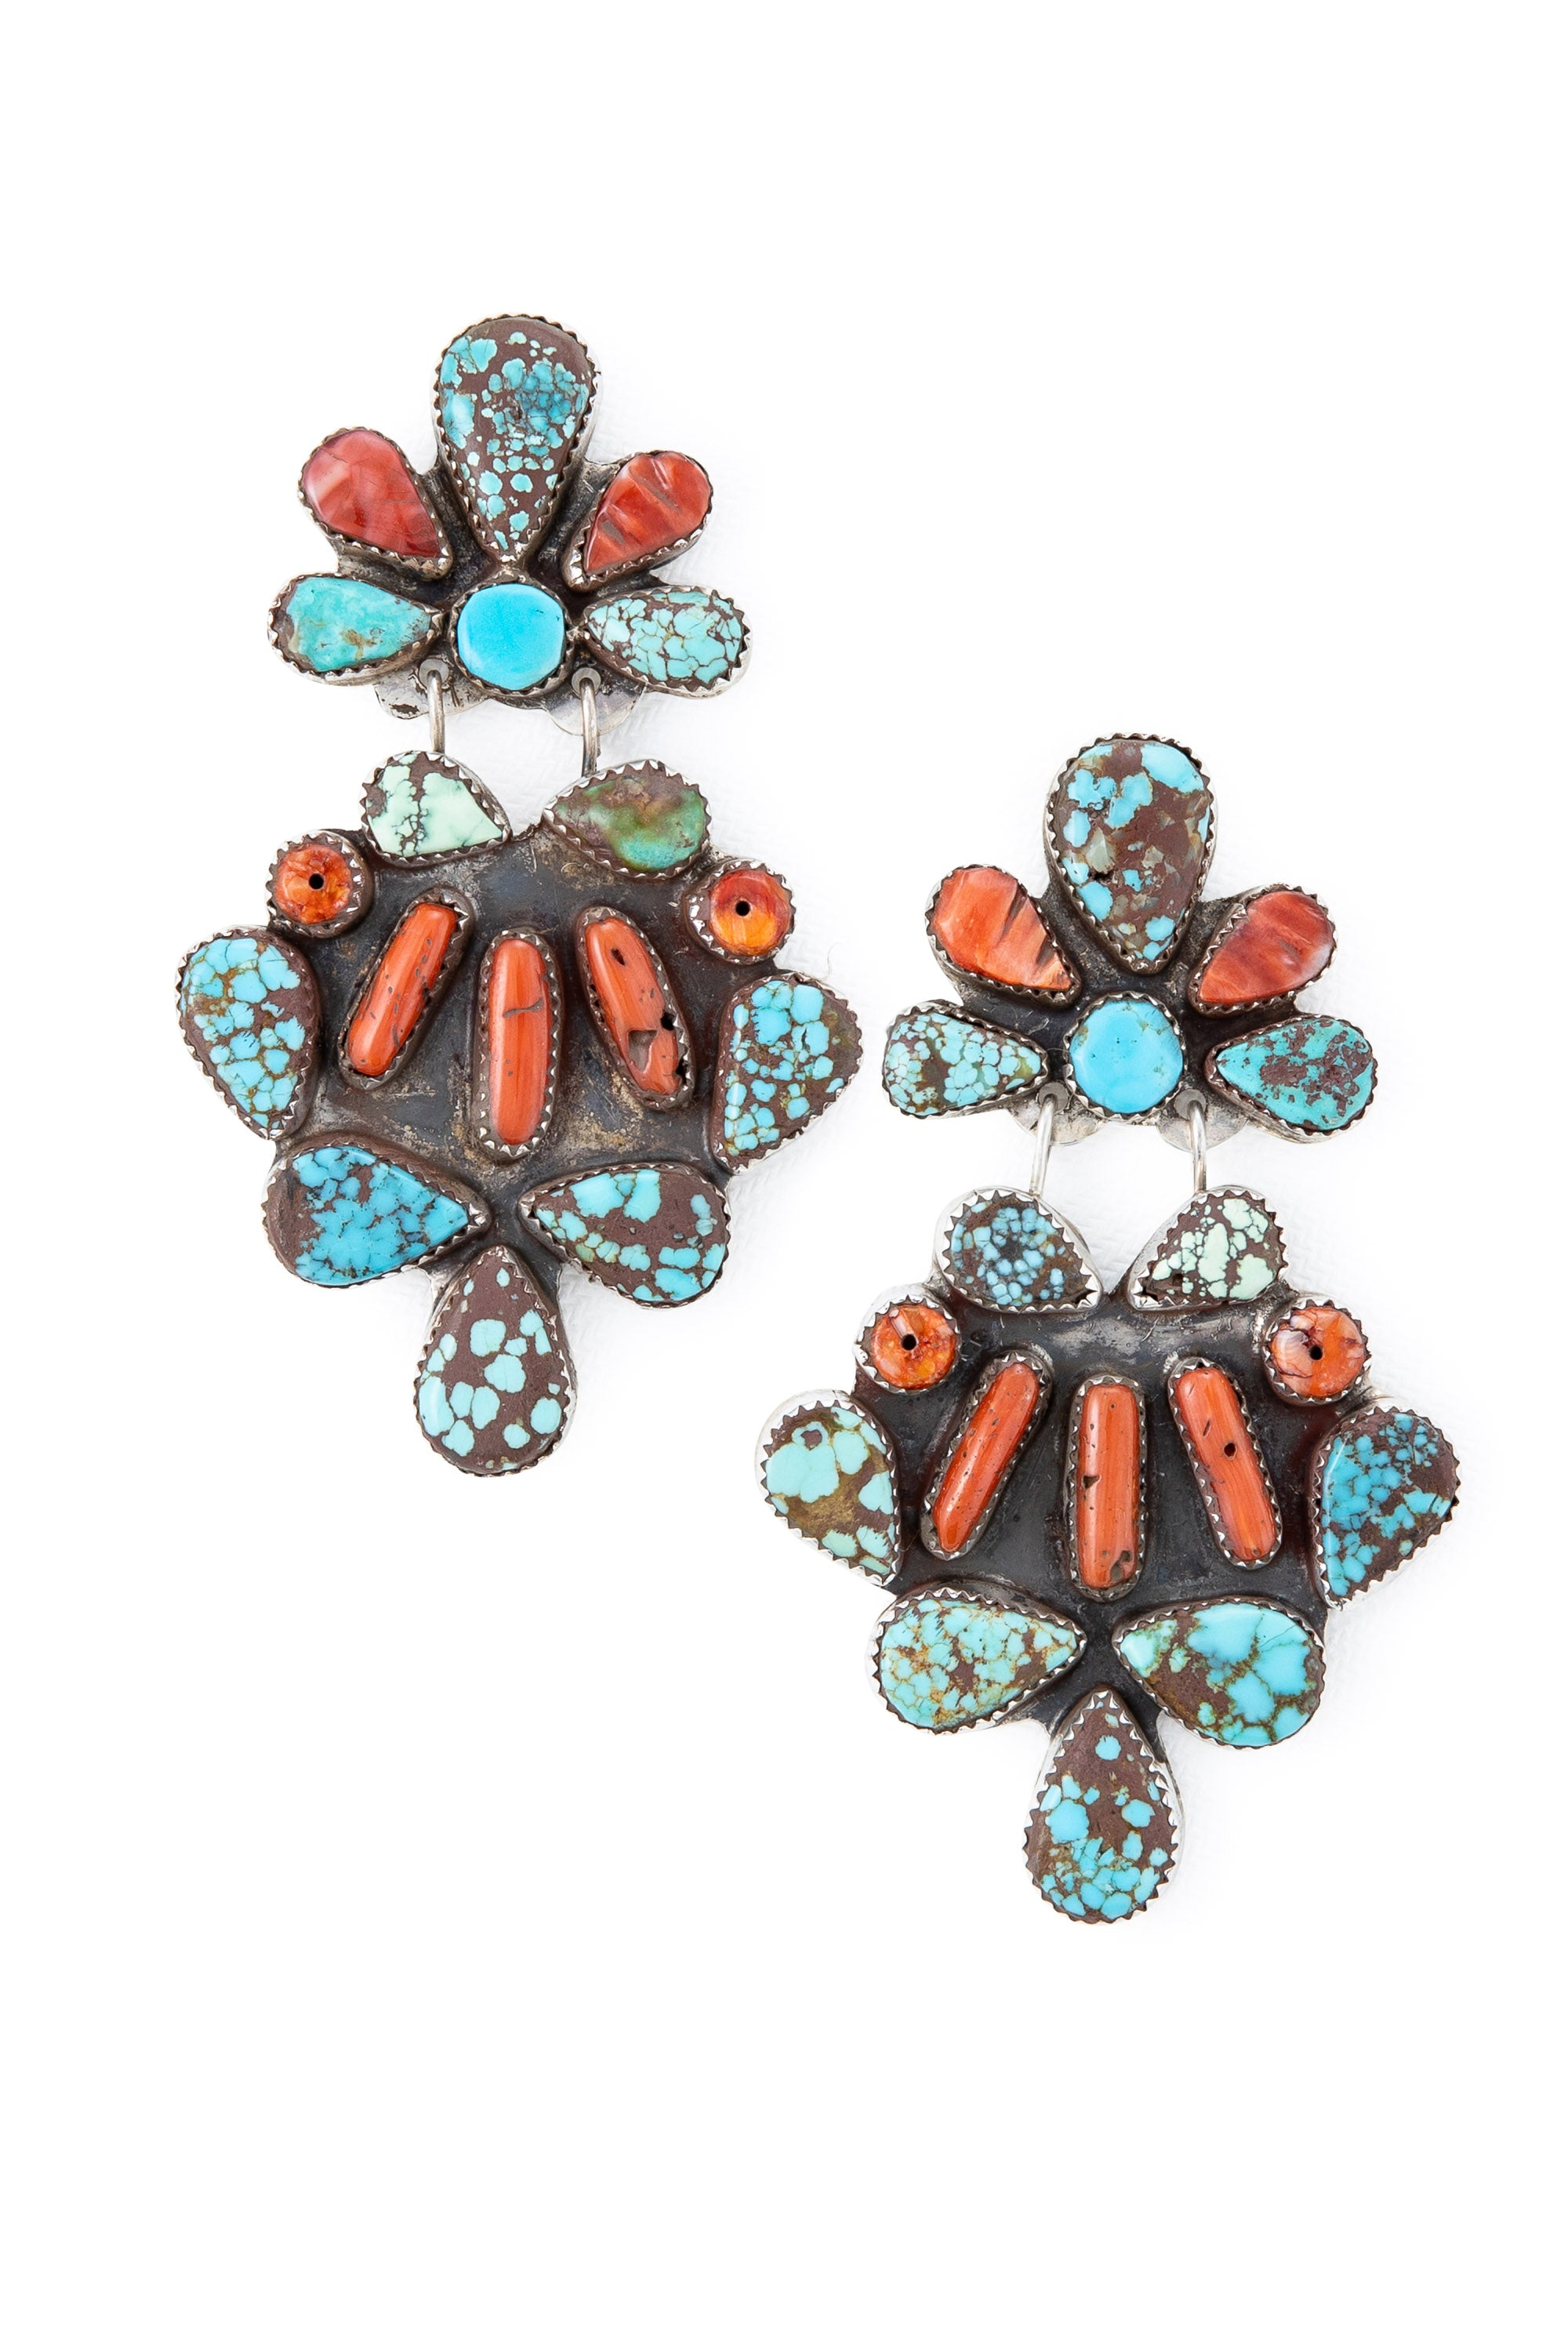 Earrings, Chandelier, Turquoise & Coral, Oscar Betz, Hallmark, Vintage, Estate, 562